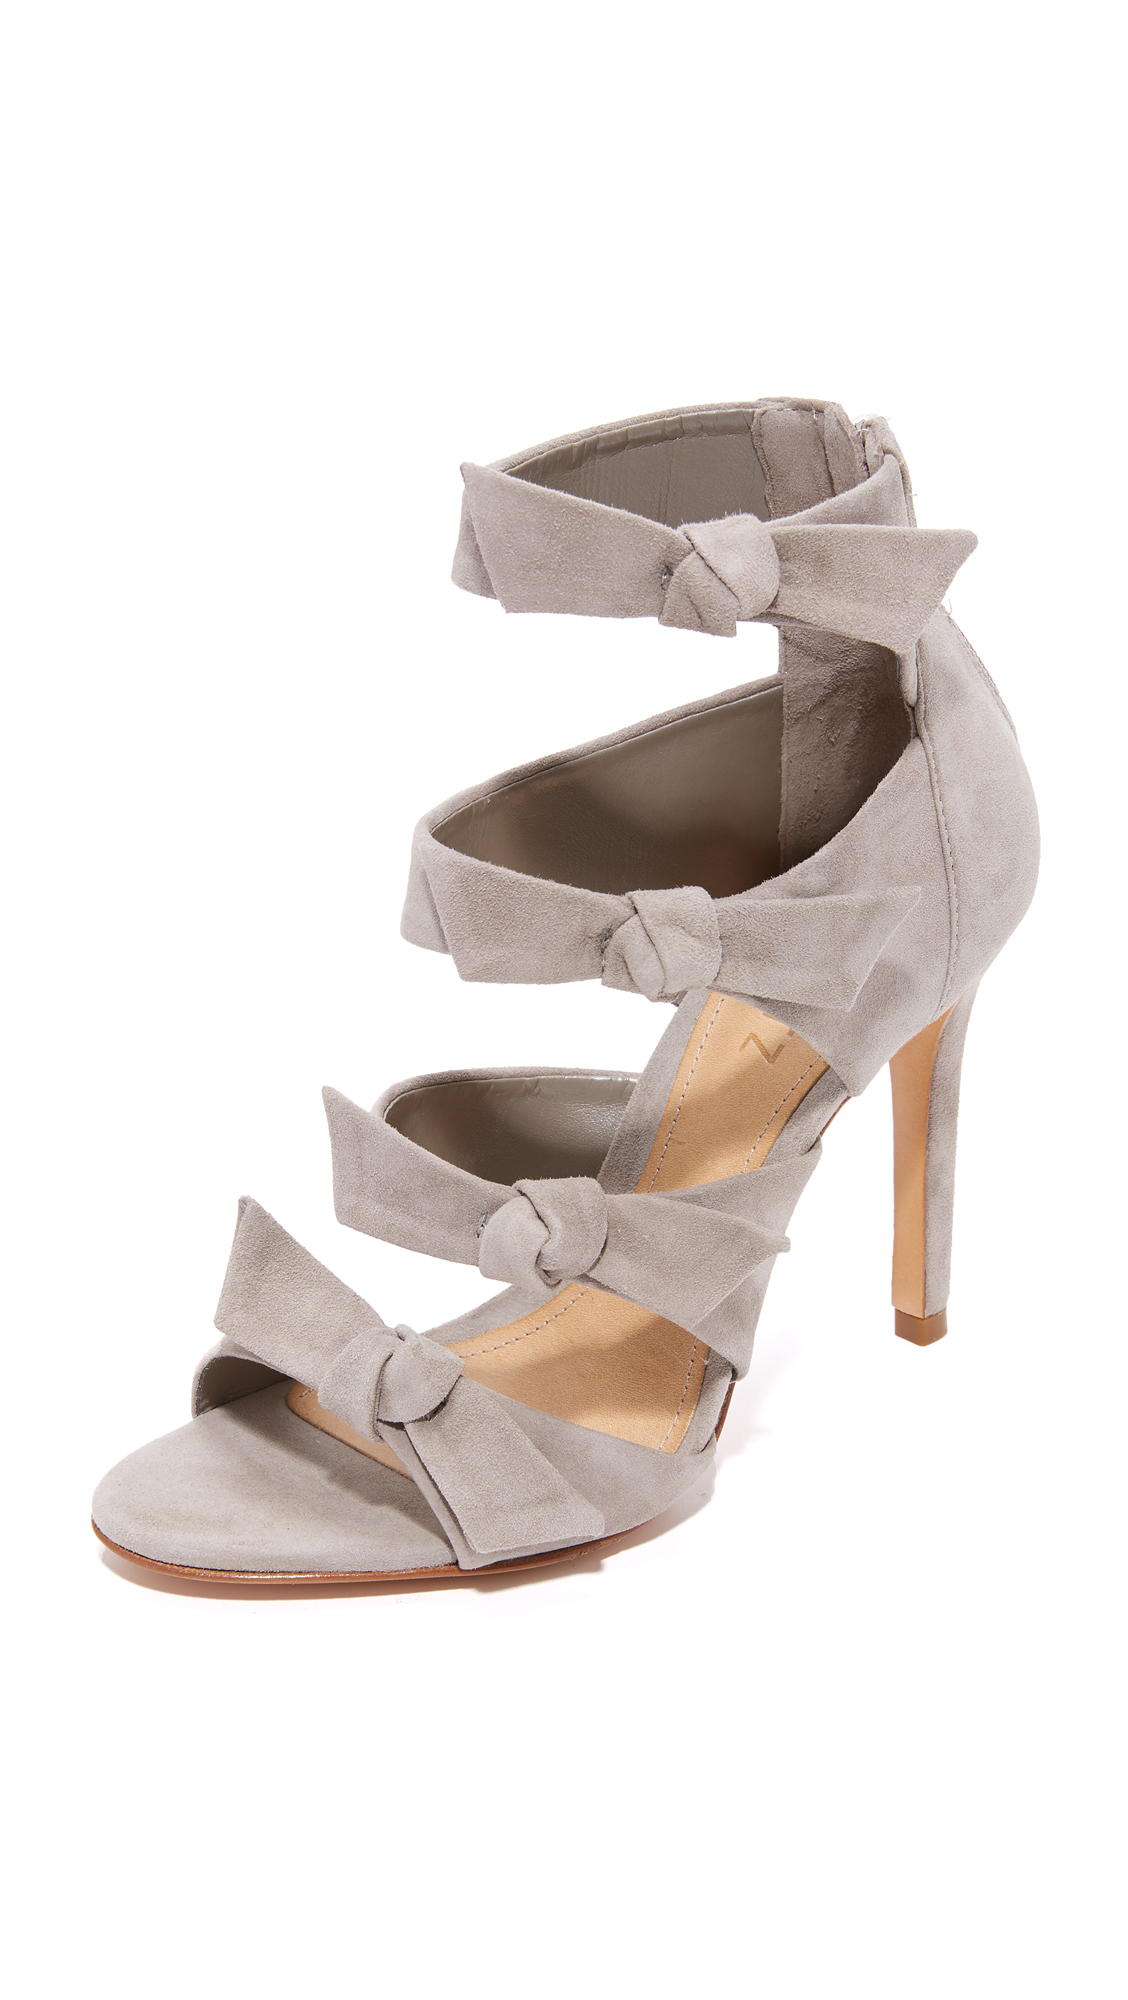 Schutz Miranda Bow Sandals - Mouse